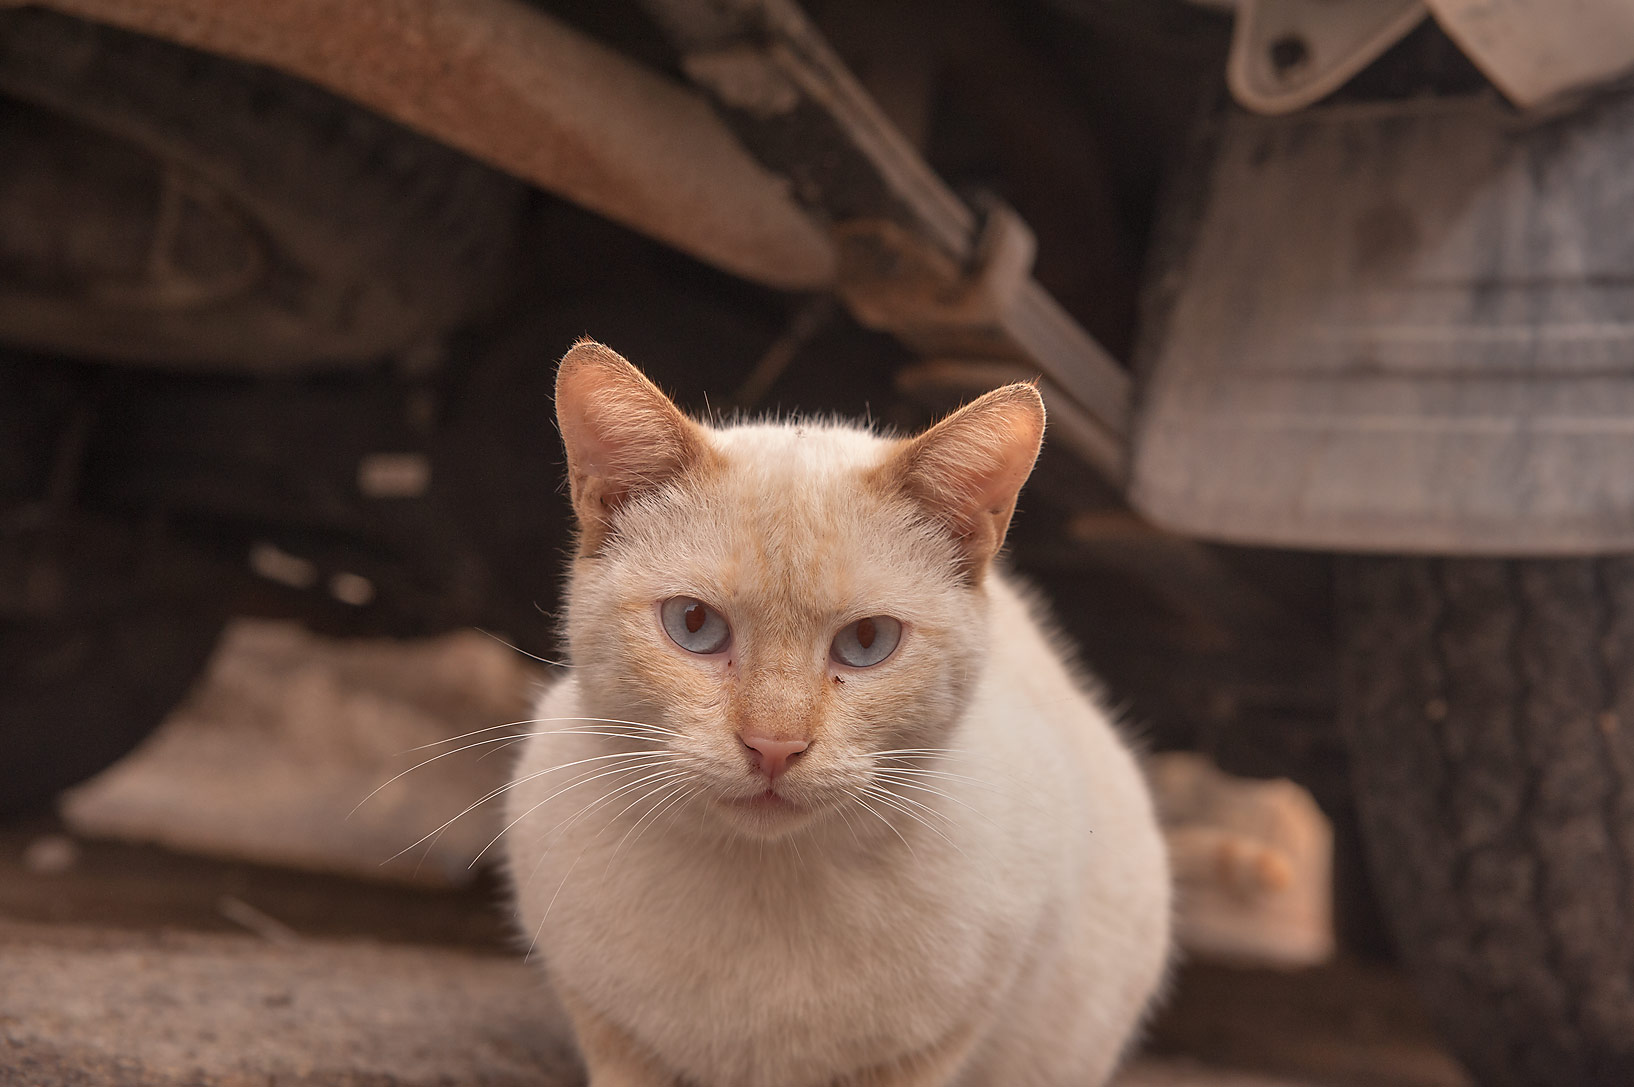 Pale cat under a car on Al Maymoun St. in Musheirib area. Doha, Qatar